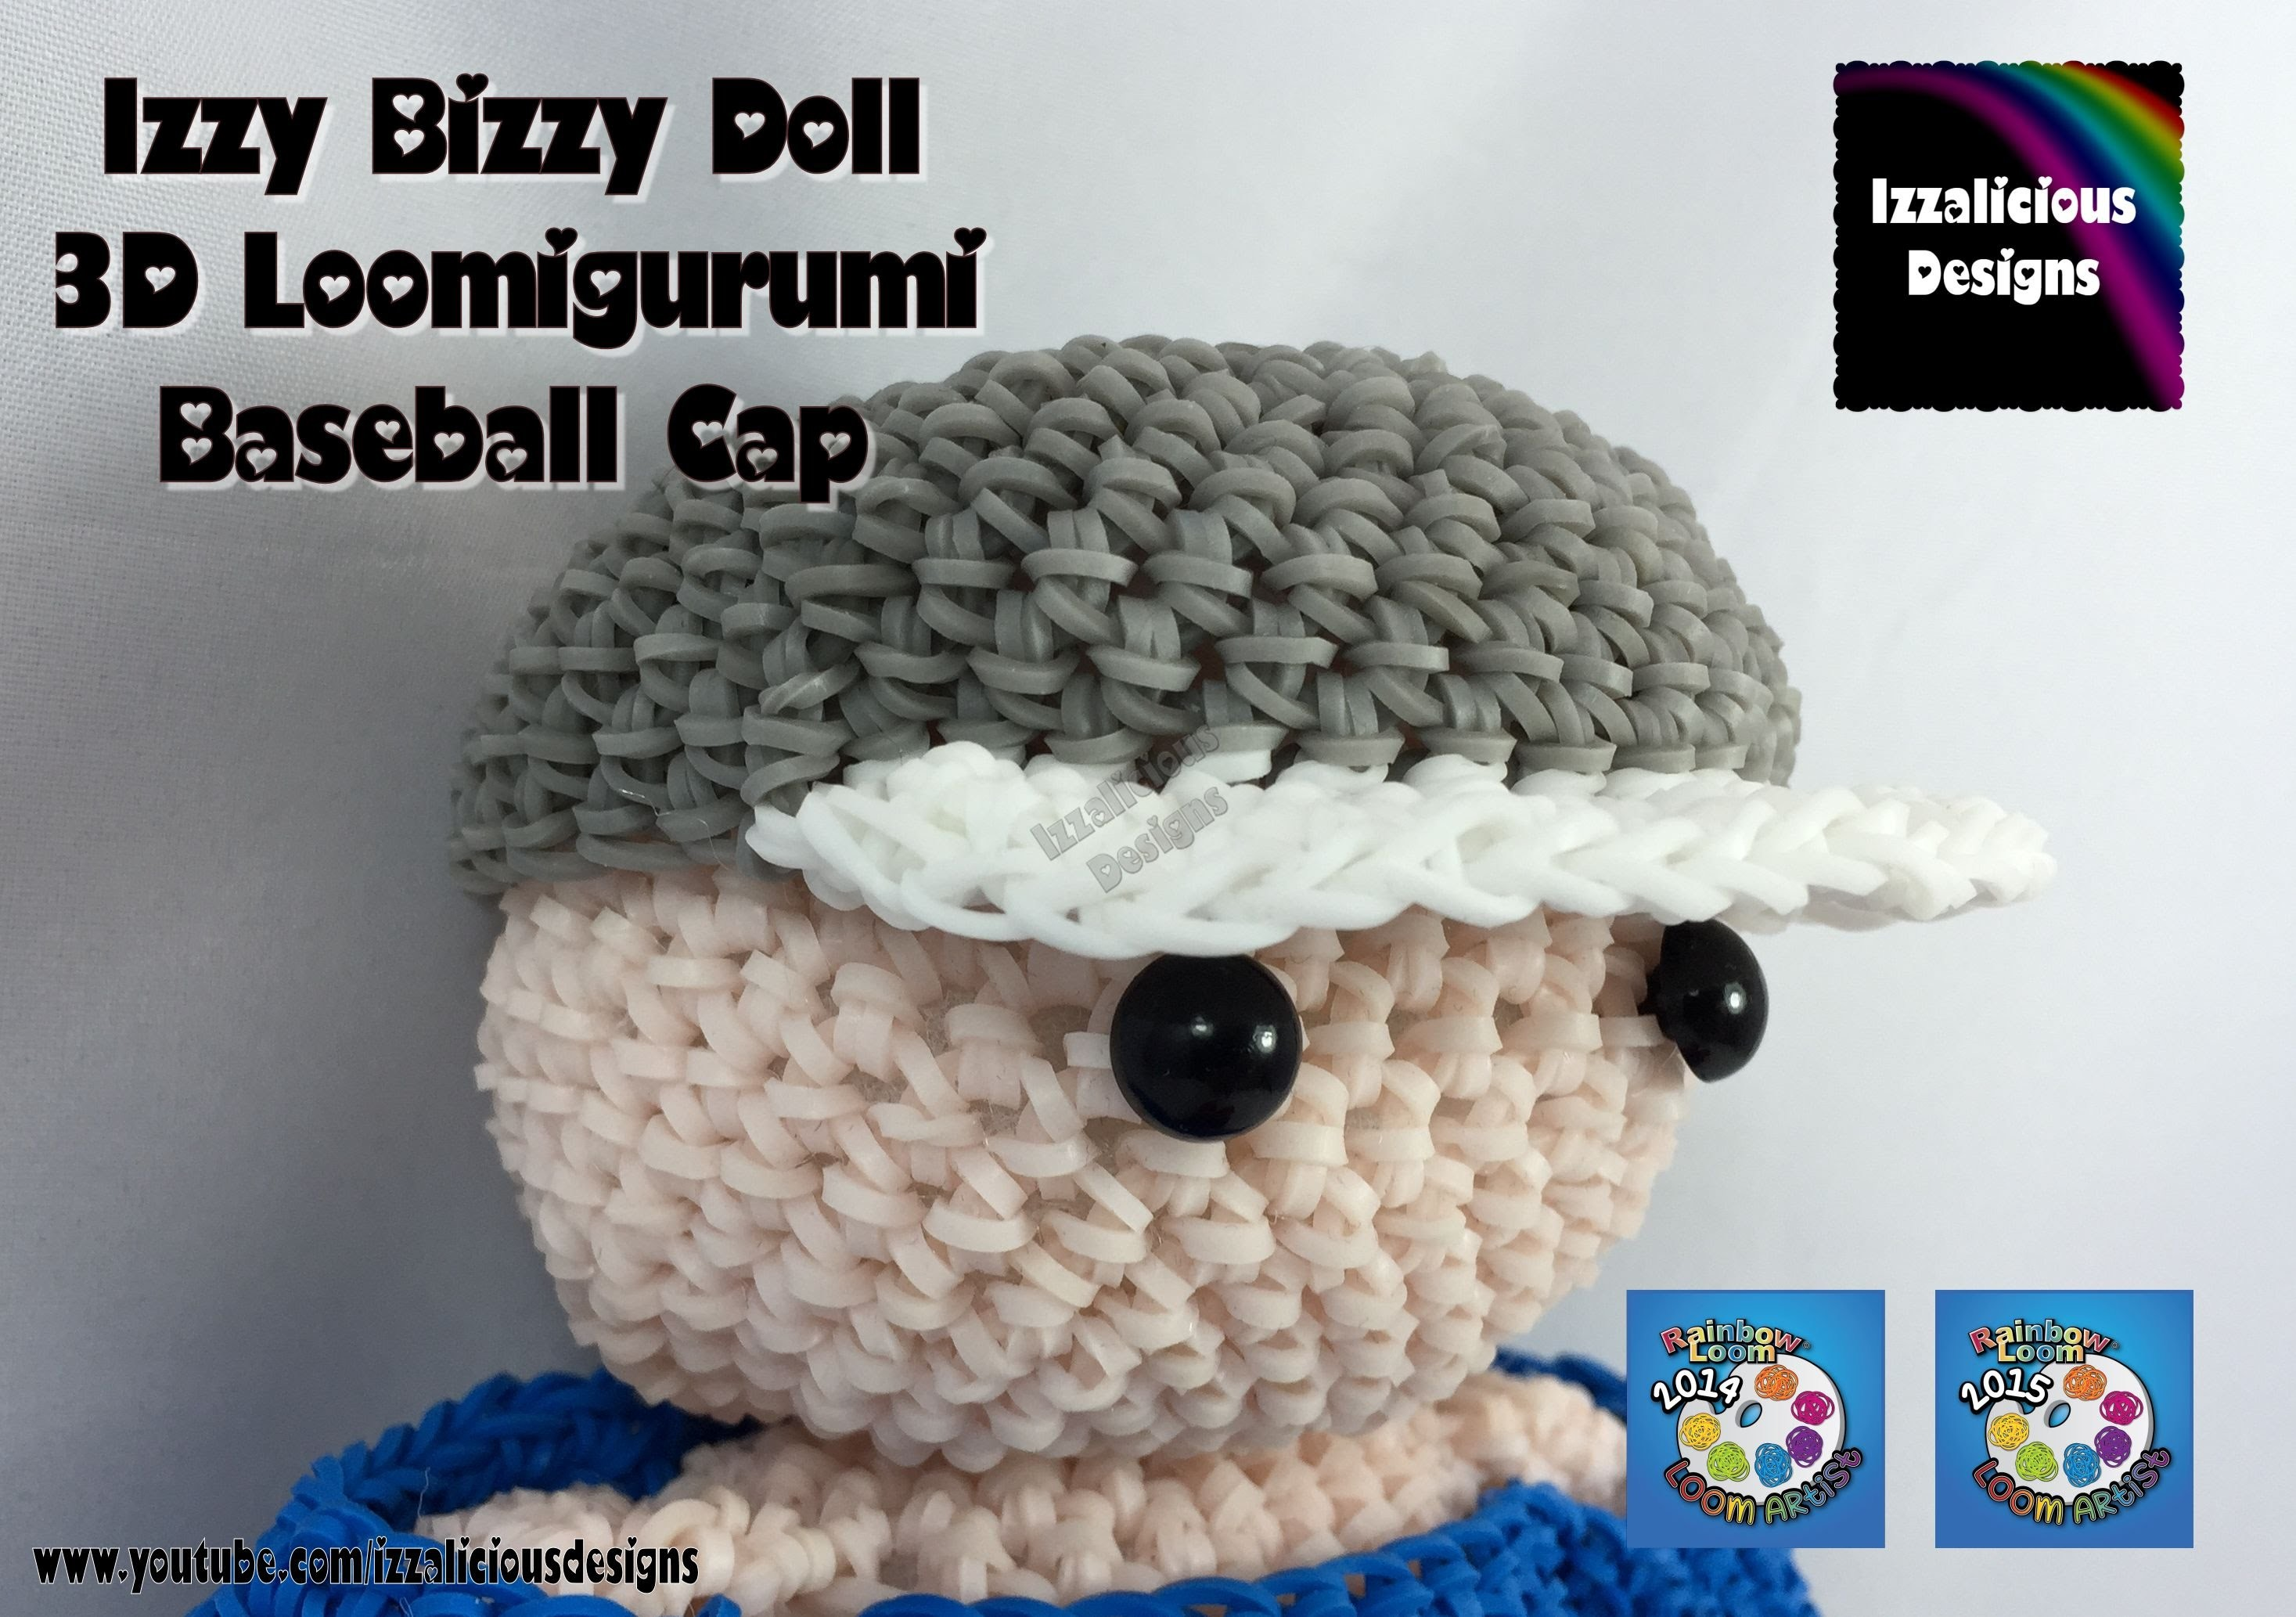 Loomigurumi Izzy Bizzy Doll - Baseball Cap - hook only - amigurumi with Rainbow Loom Bands